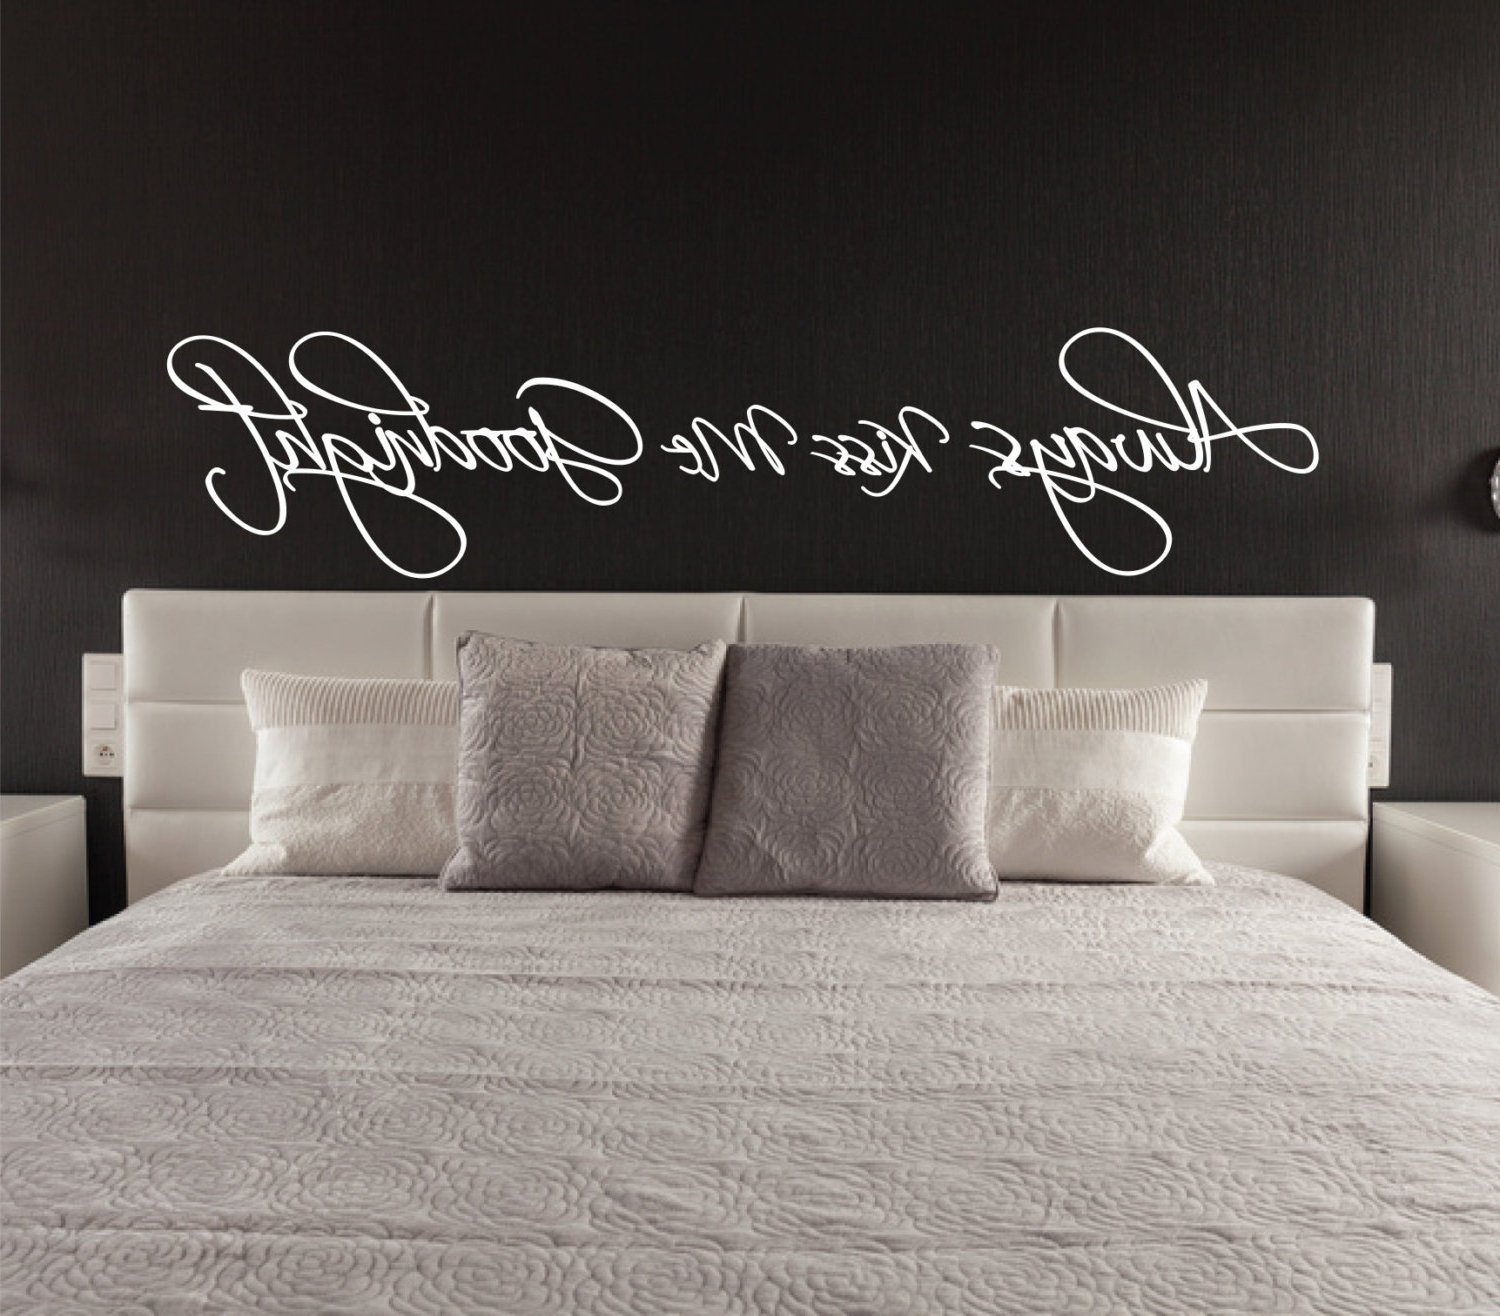 Above Bed Wall Sticker – Always Kiss Me Goodnight L Over Bed Decor With Regard To Favorite Over The Bed Wall Art (View 1 of 15)